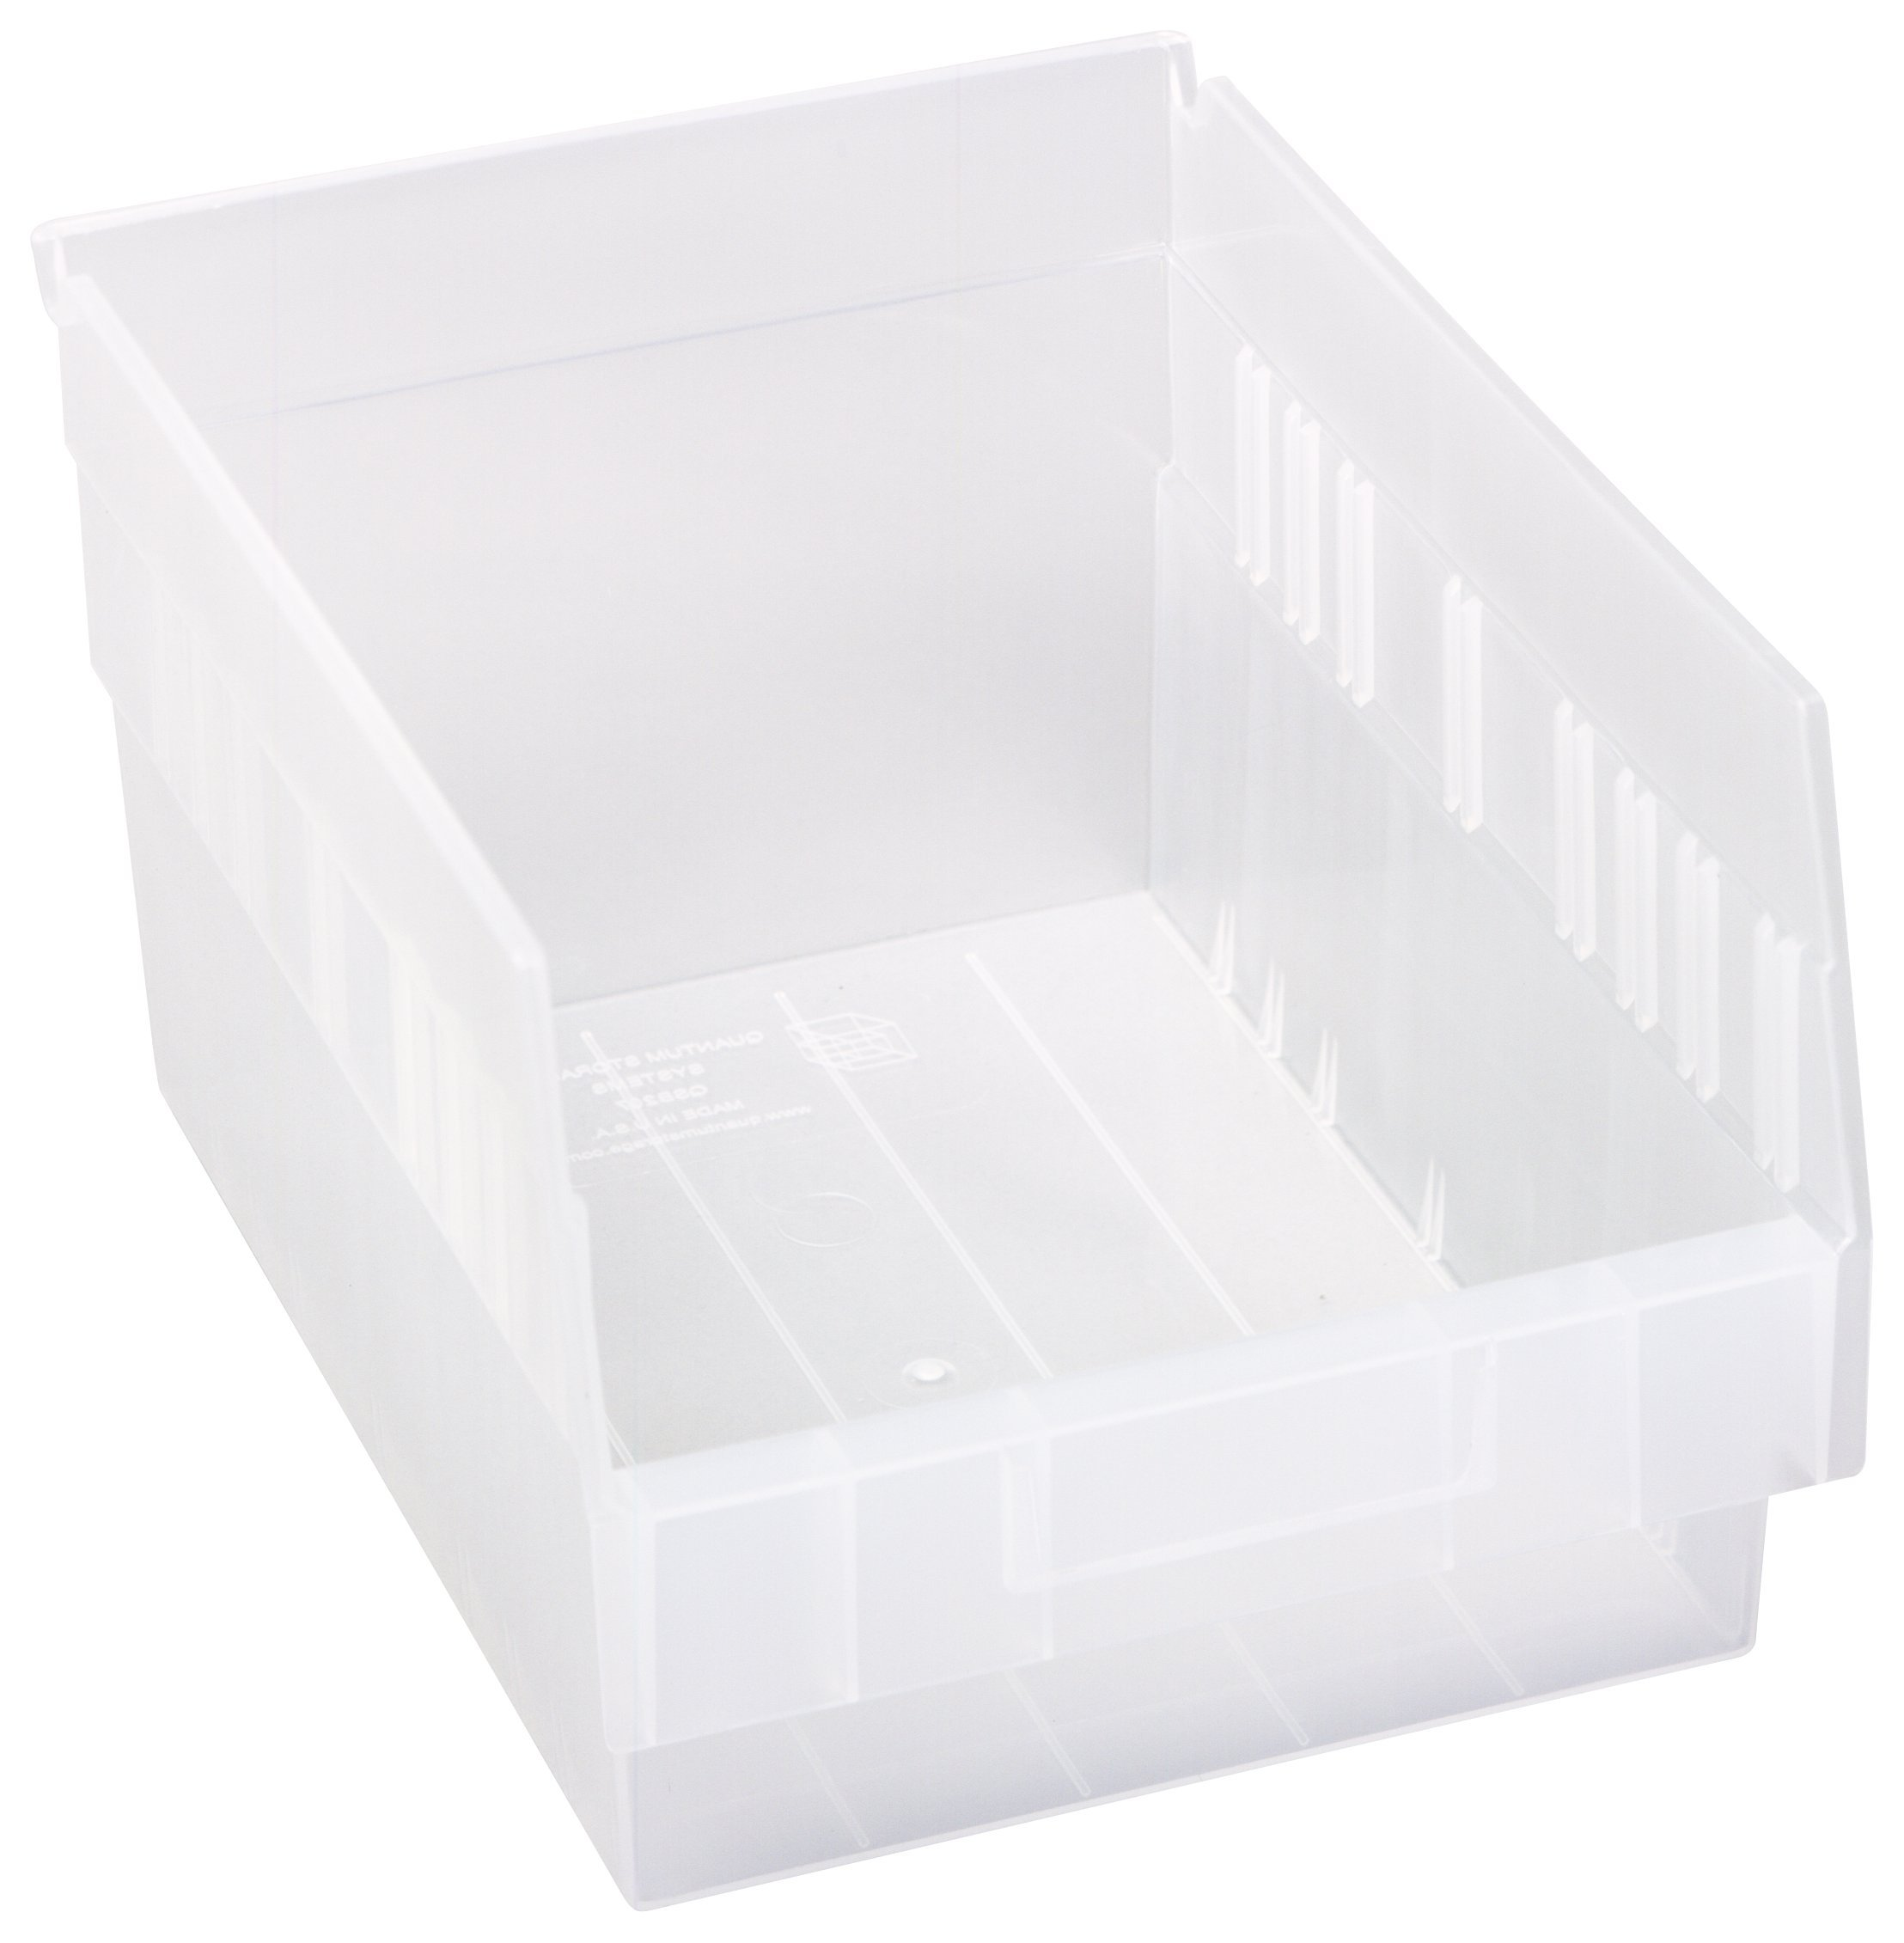 Quantum QSB207CL Store More Shelf Bin, 11-5/8'' Length x 8-3/8'' Width x 6'' Height, Clear, Pack of 20 by Quantum